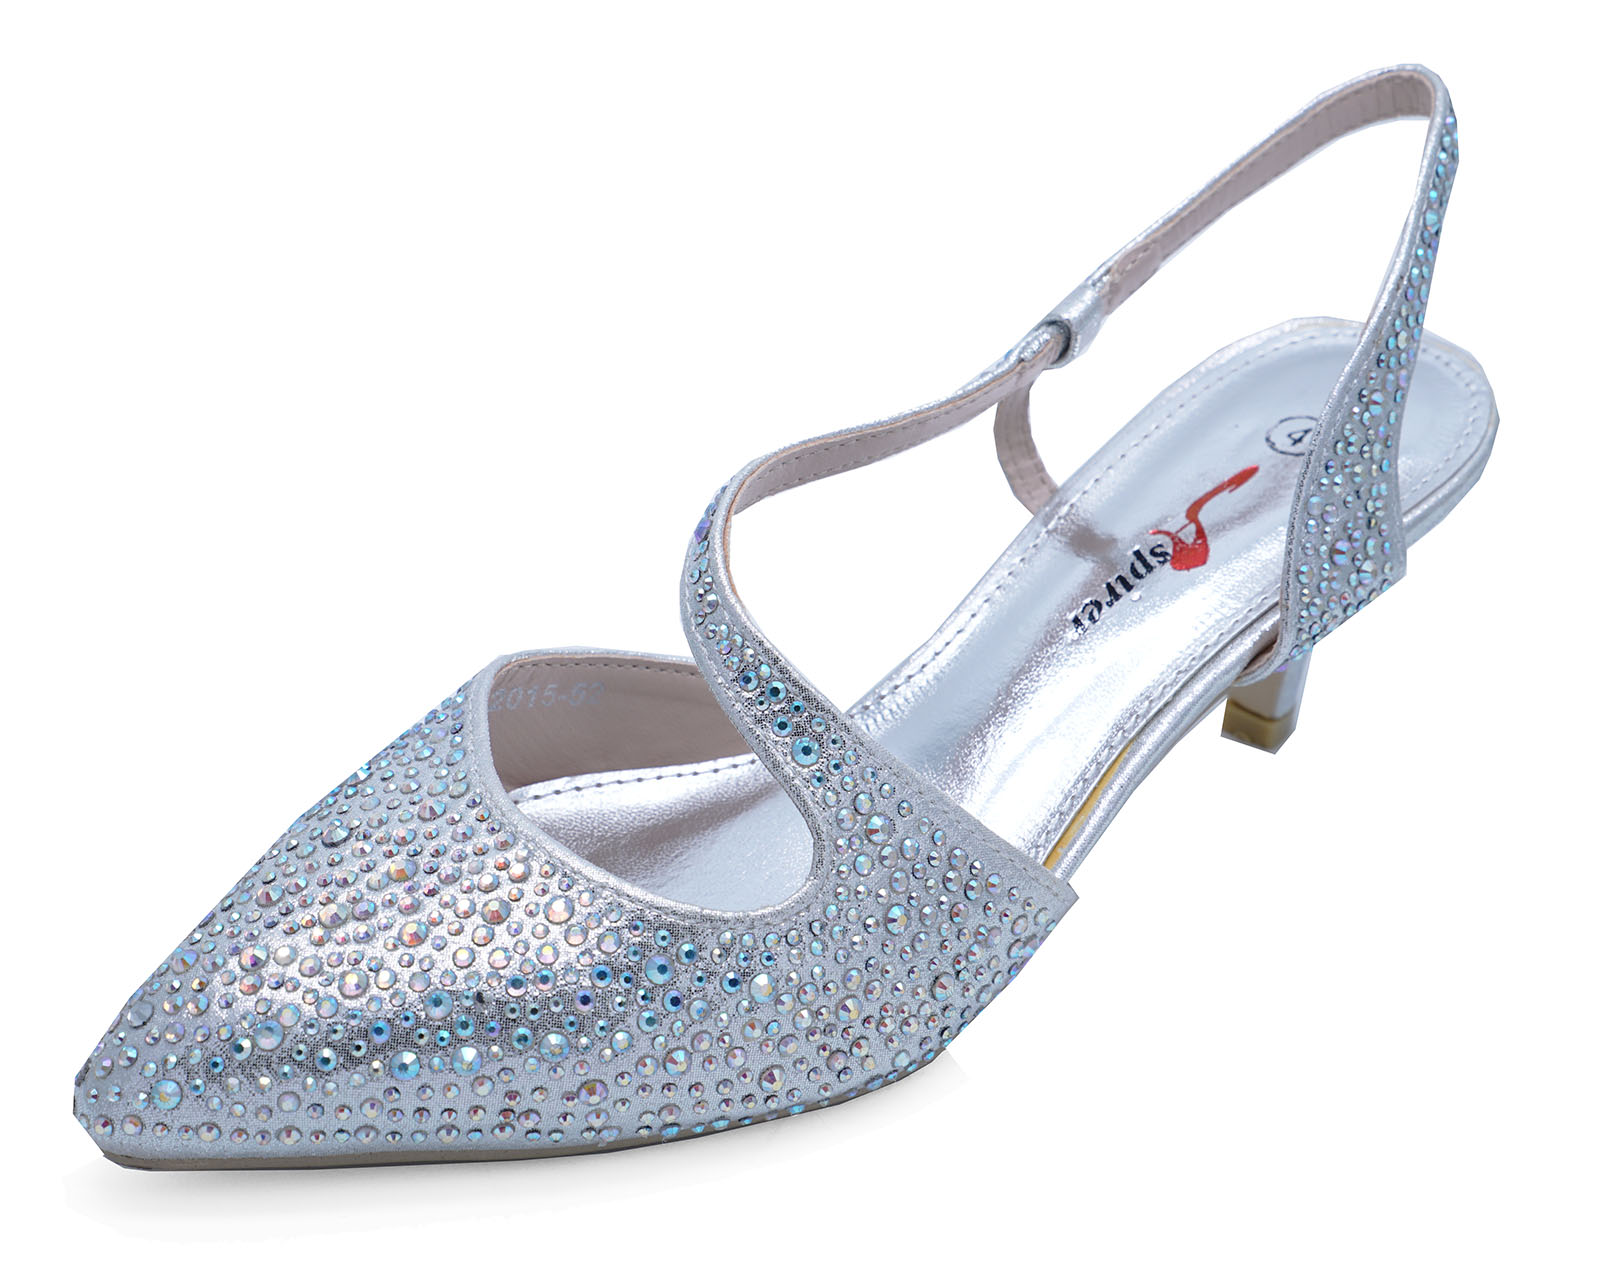 c106df97f110 Womens Silver Low Heel Slingback Diamante Elegant Party Evening. Full Size  Of Wedding Shoes Low Heel White Navy Wedges Bridal